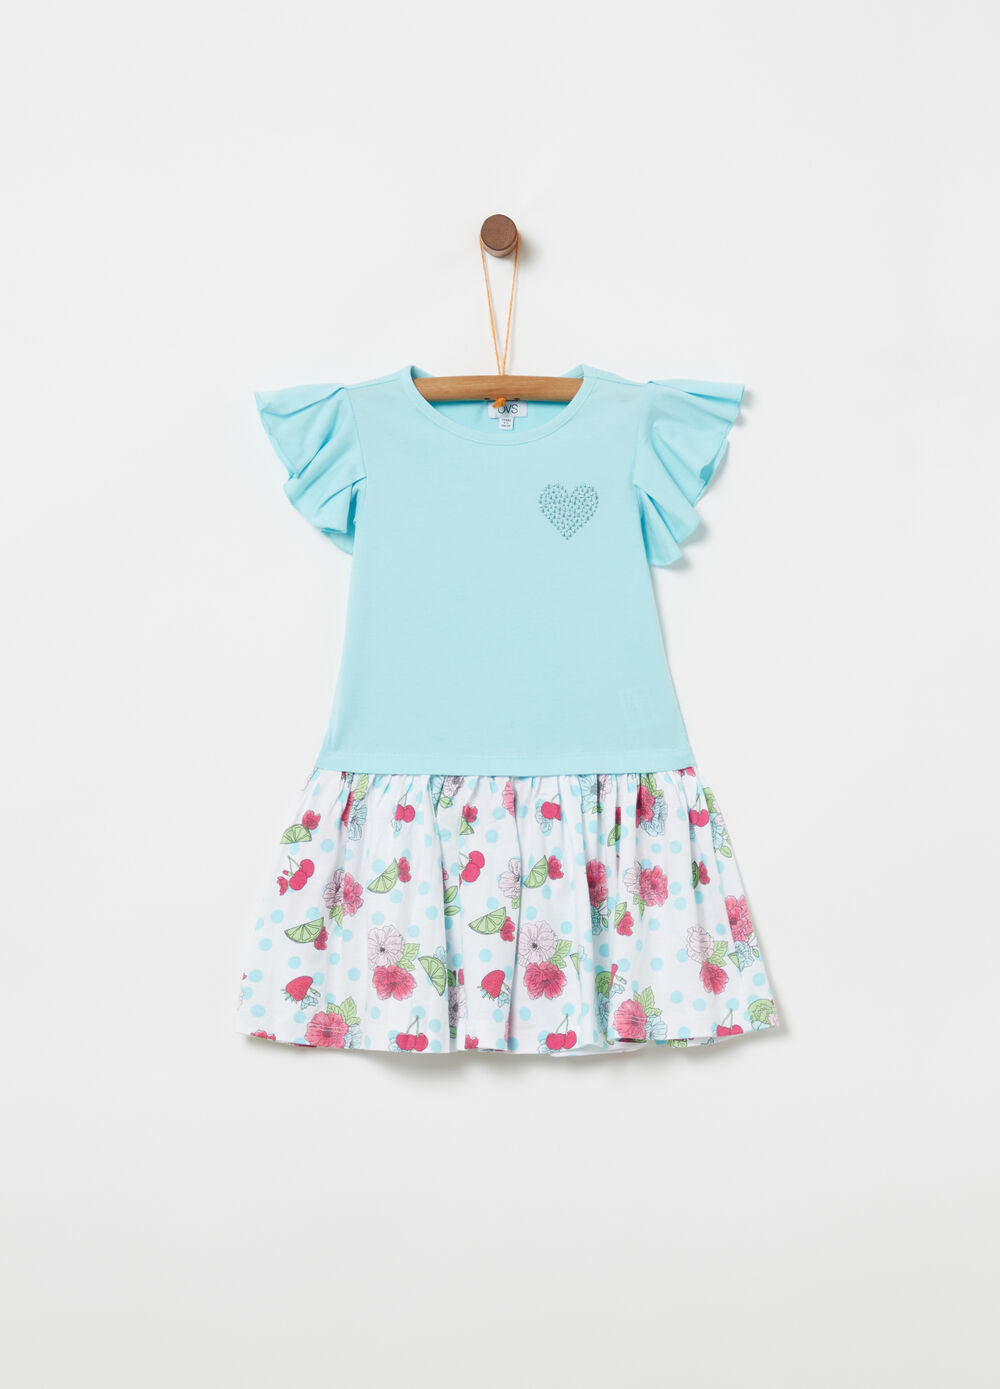 T-shirt and skirt dress with floral studs